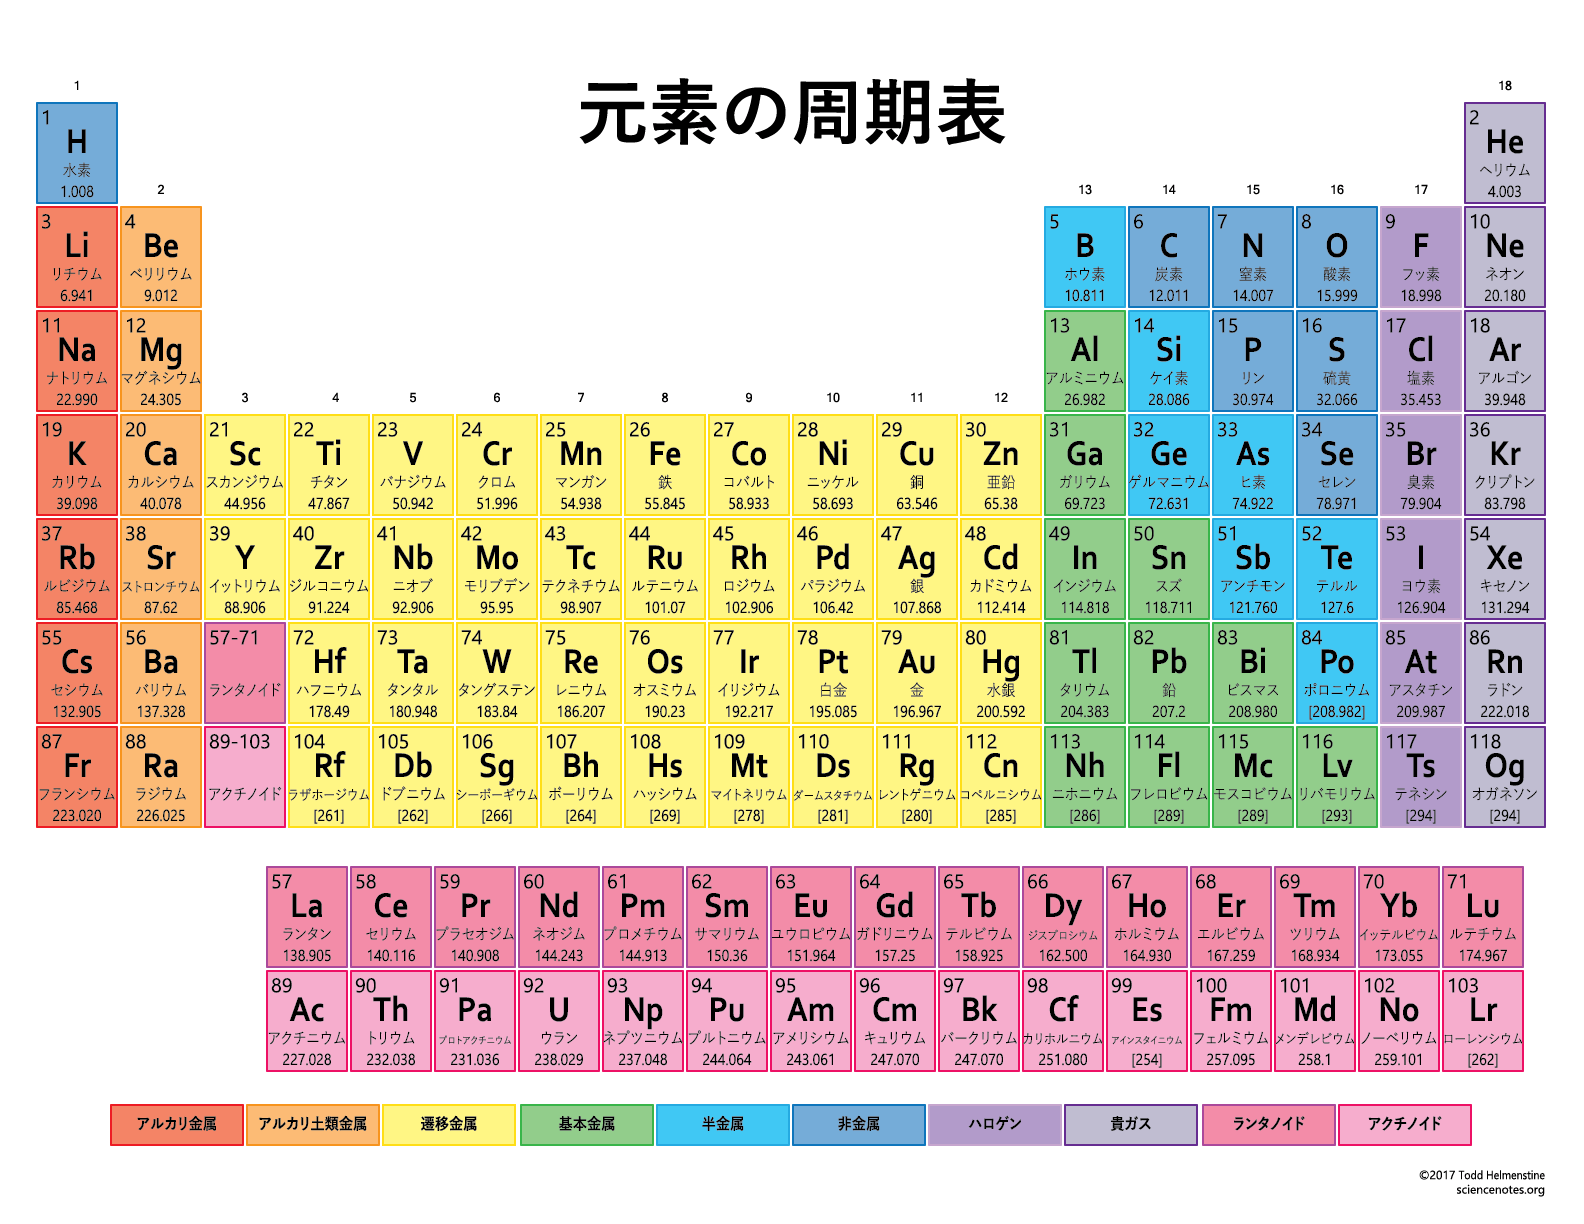 Genso no shuuki hyou japanese periodic table of the elements genso shuuki hyou urtaz